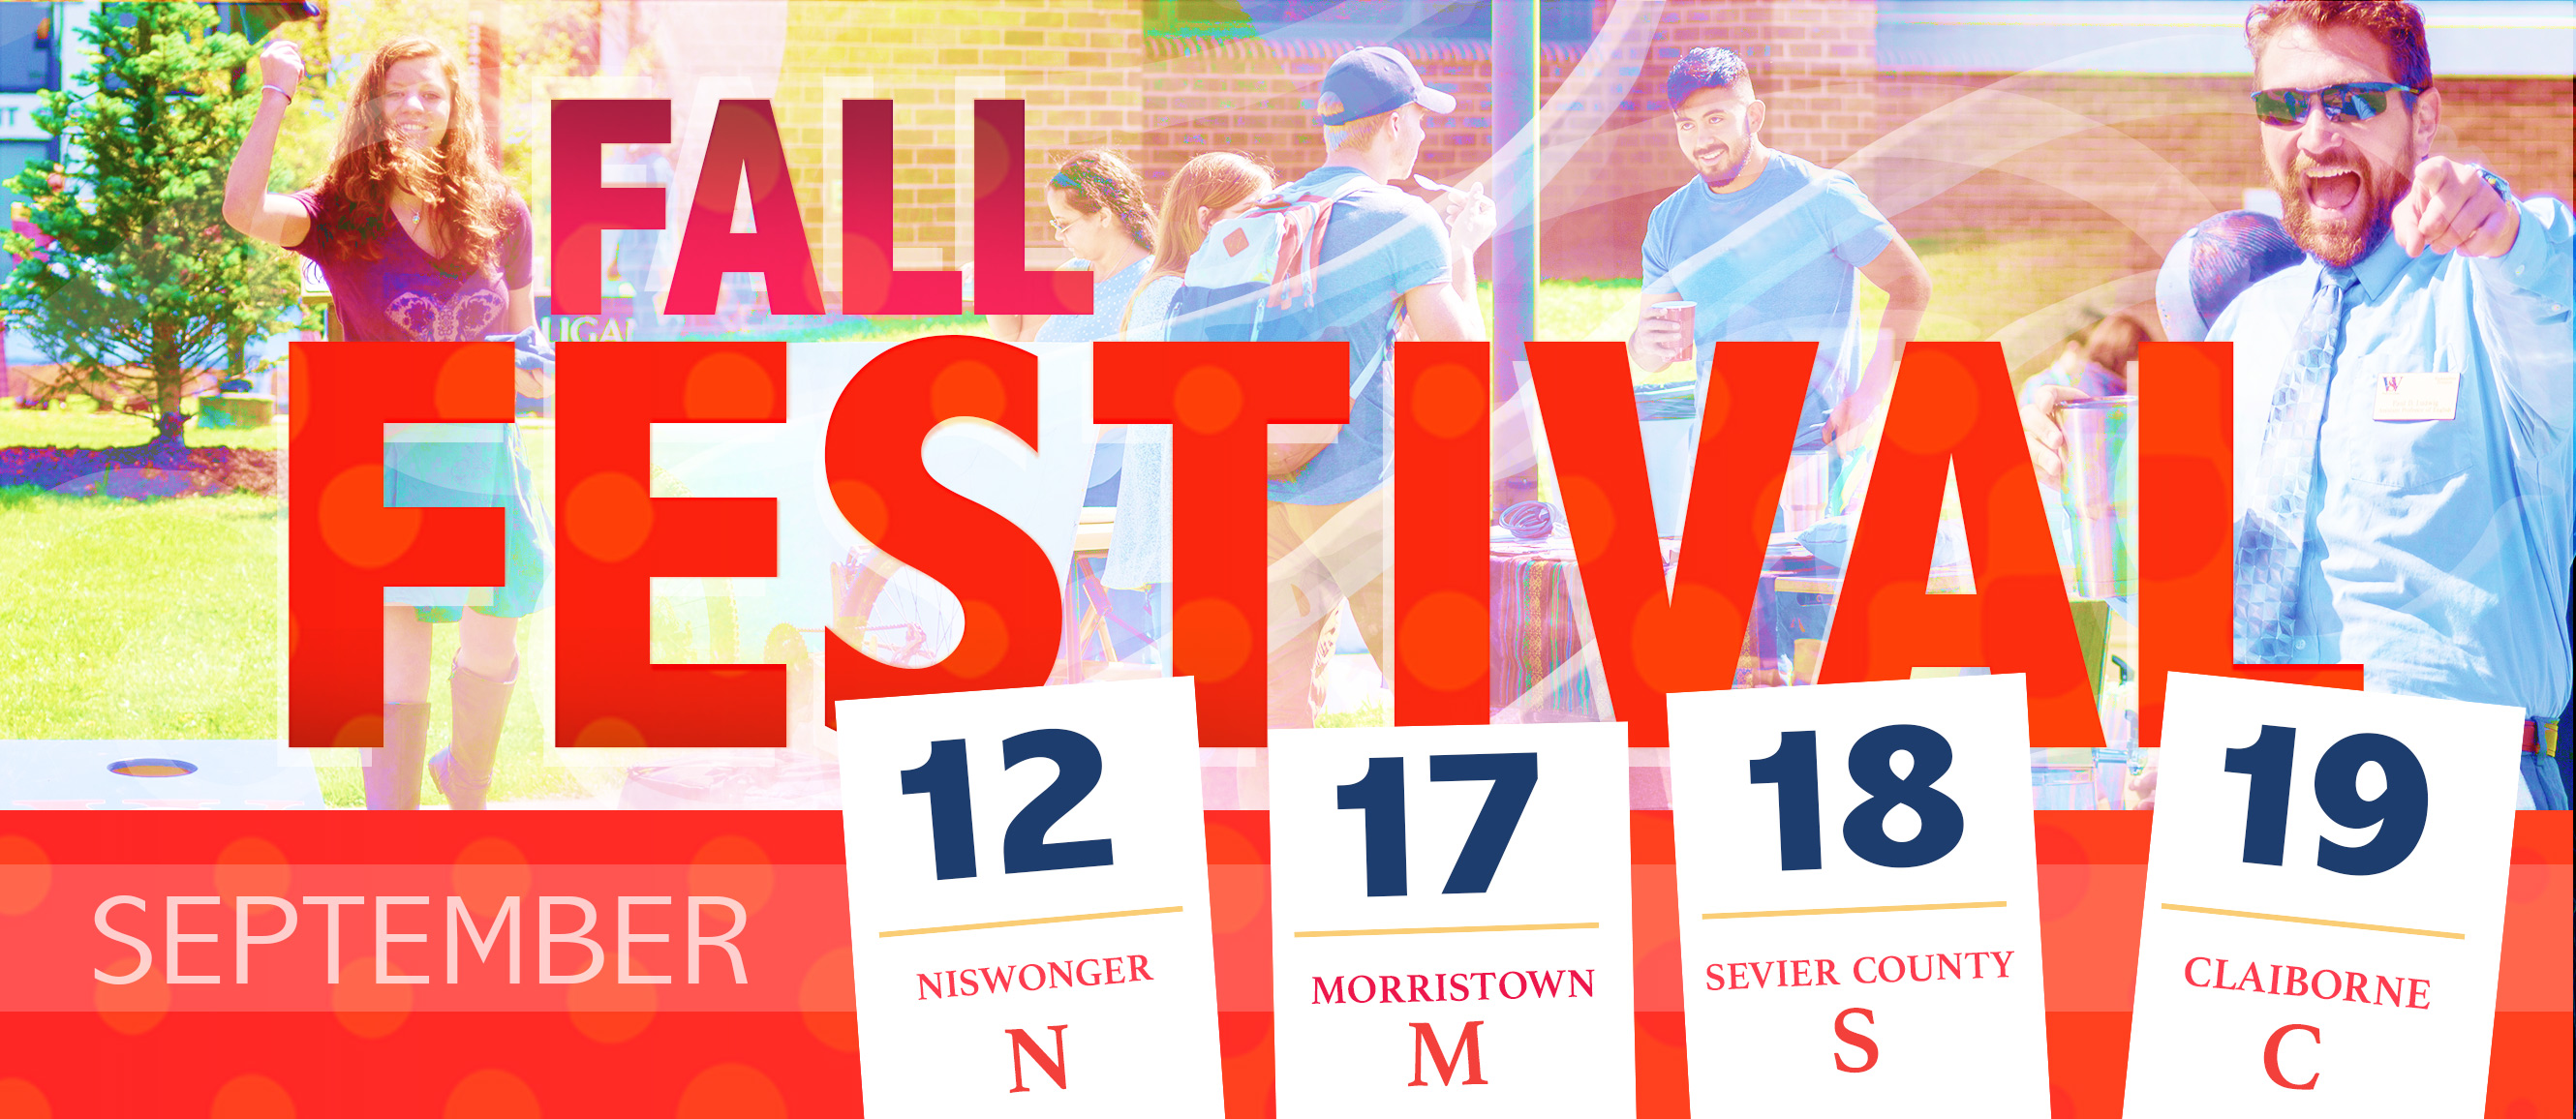 Fall Festival 2019. Niswonger Sept. 12, Morristown Sept 17, Sevier County Sept 18, Claiborne County Sept 19